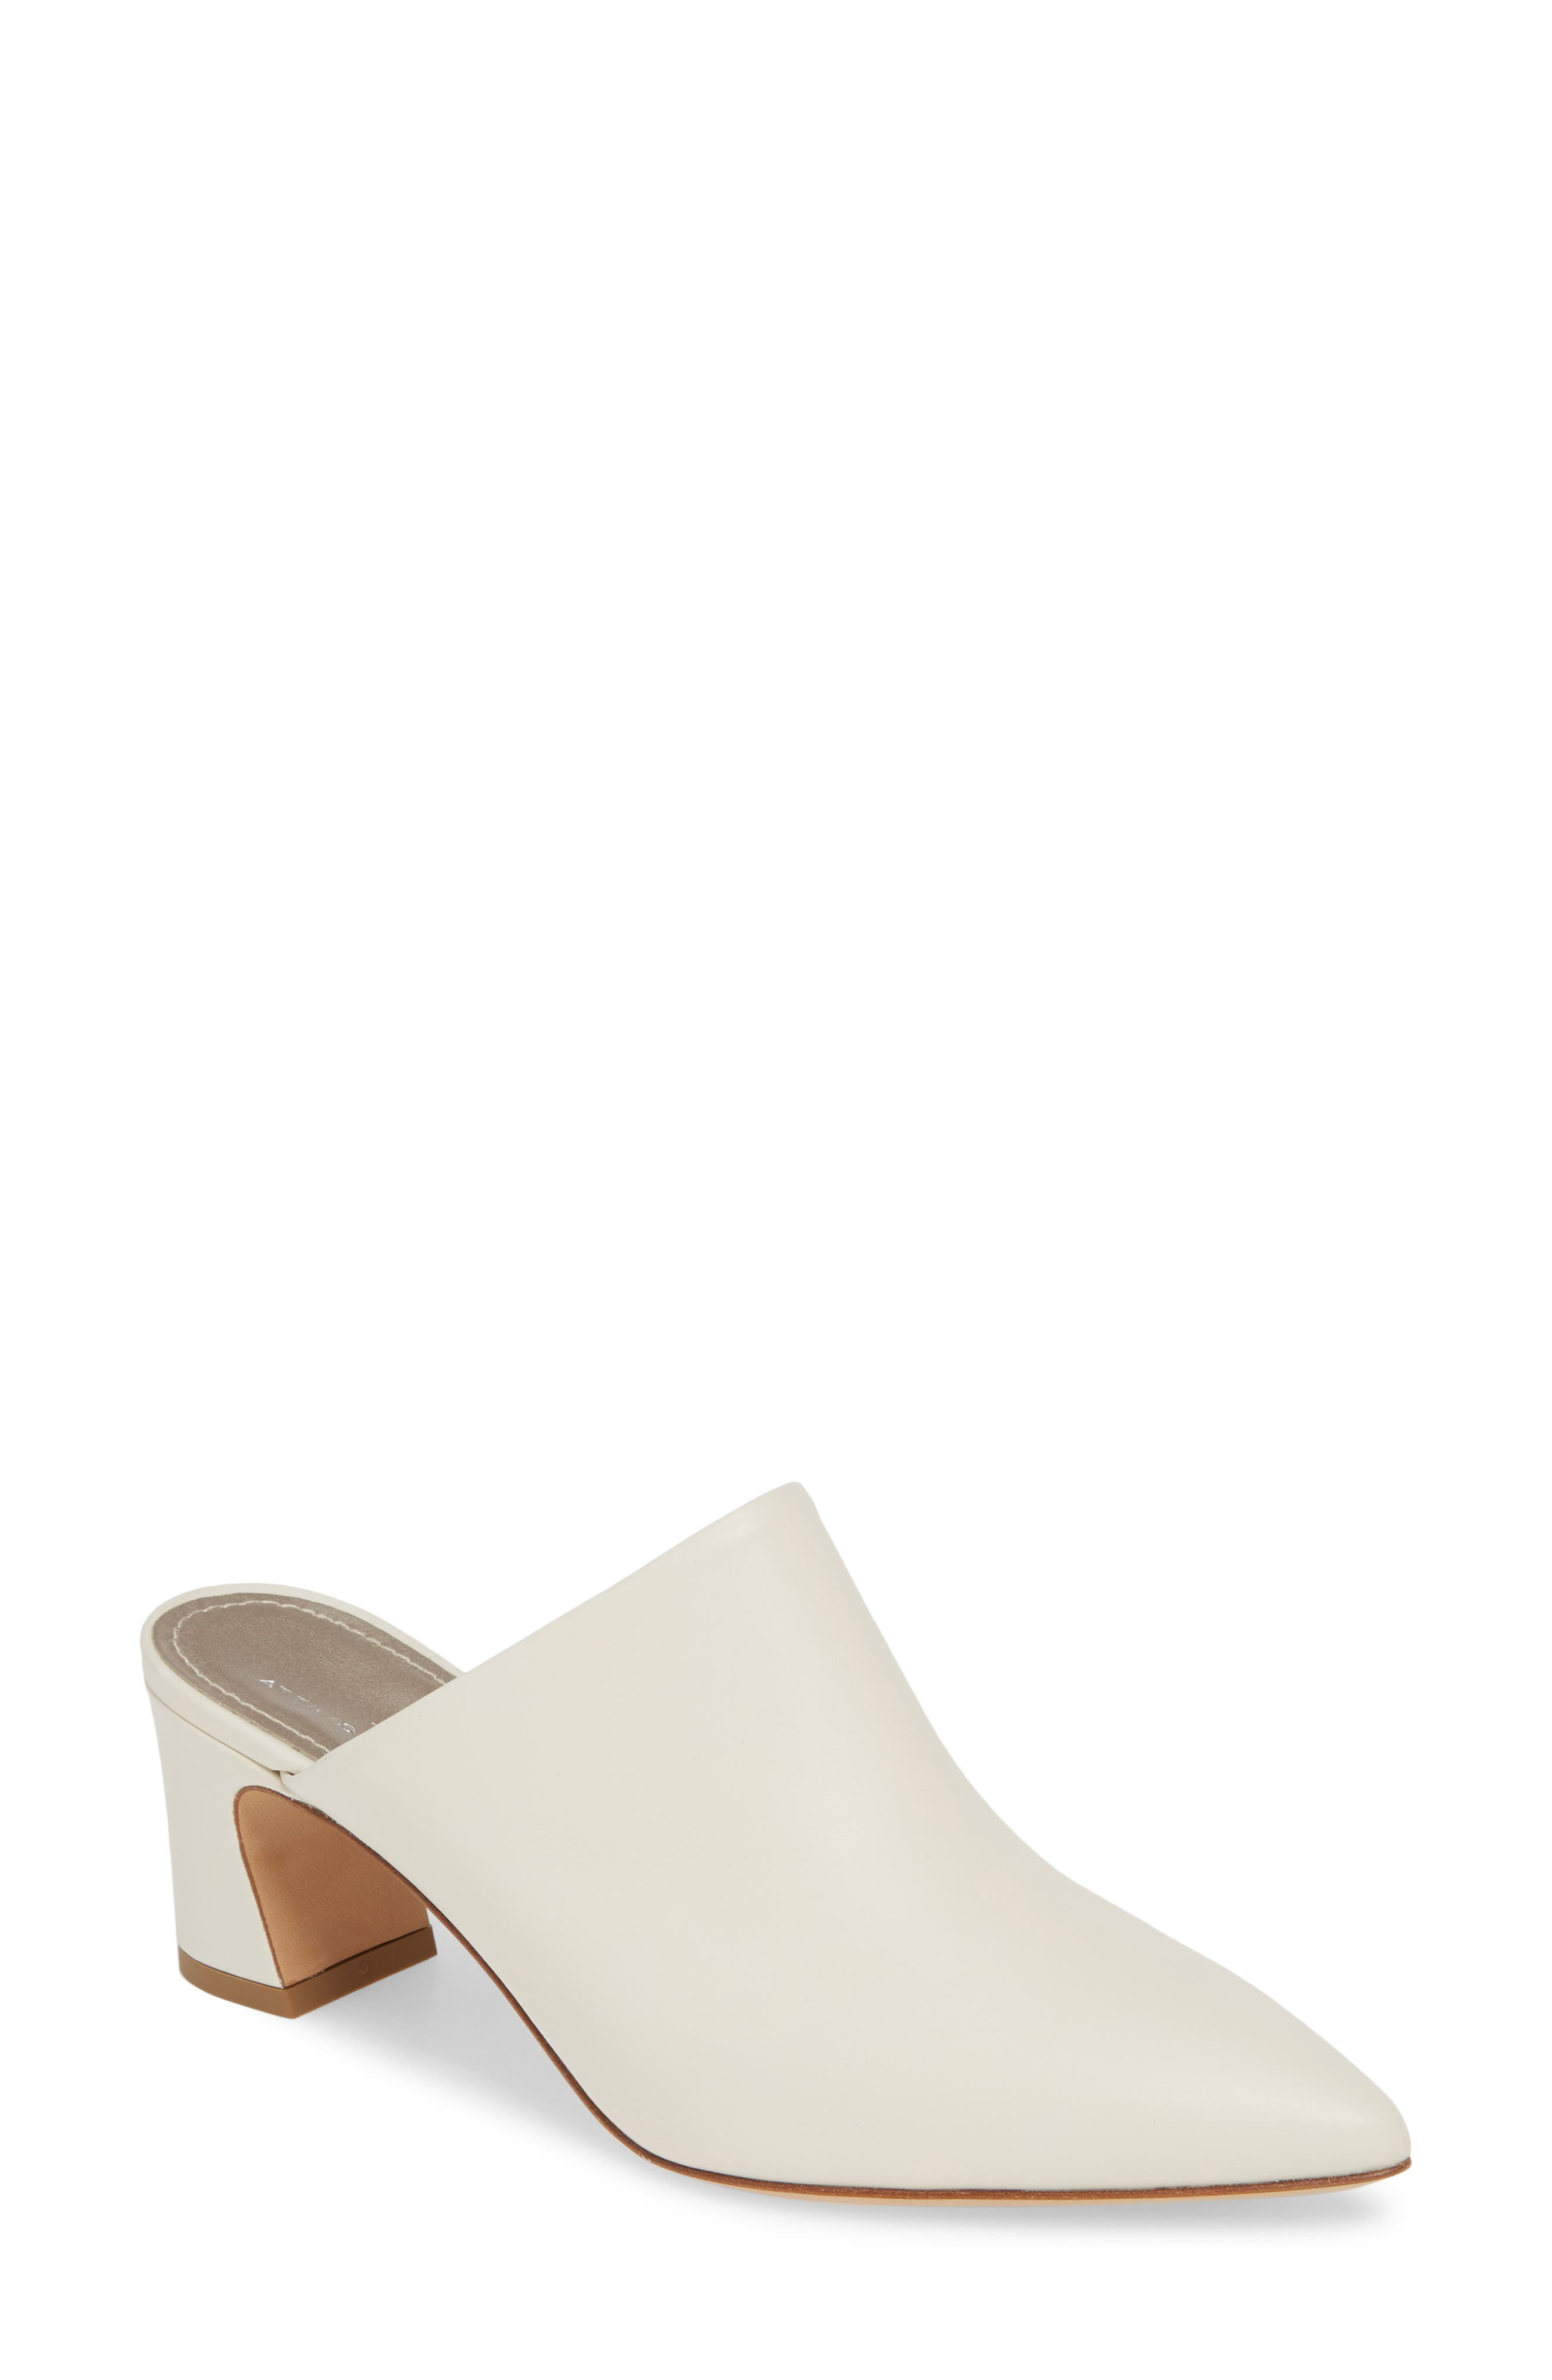 Agl Pointy Toe Mule, Ivory